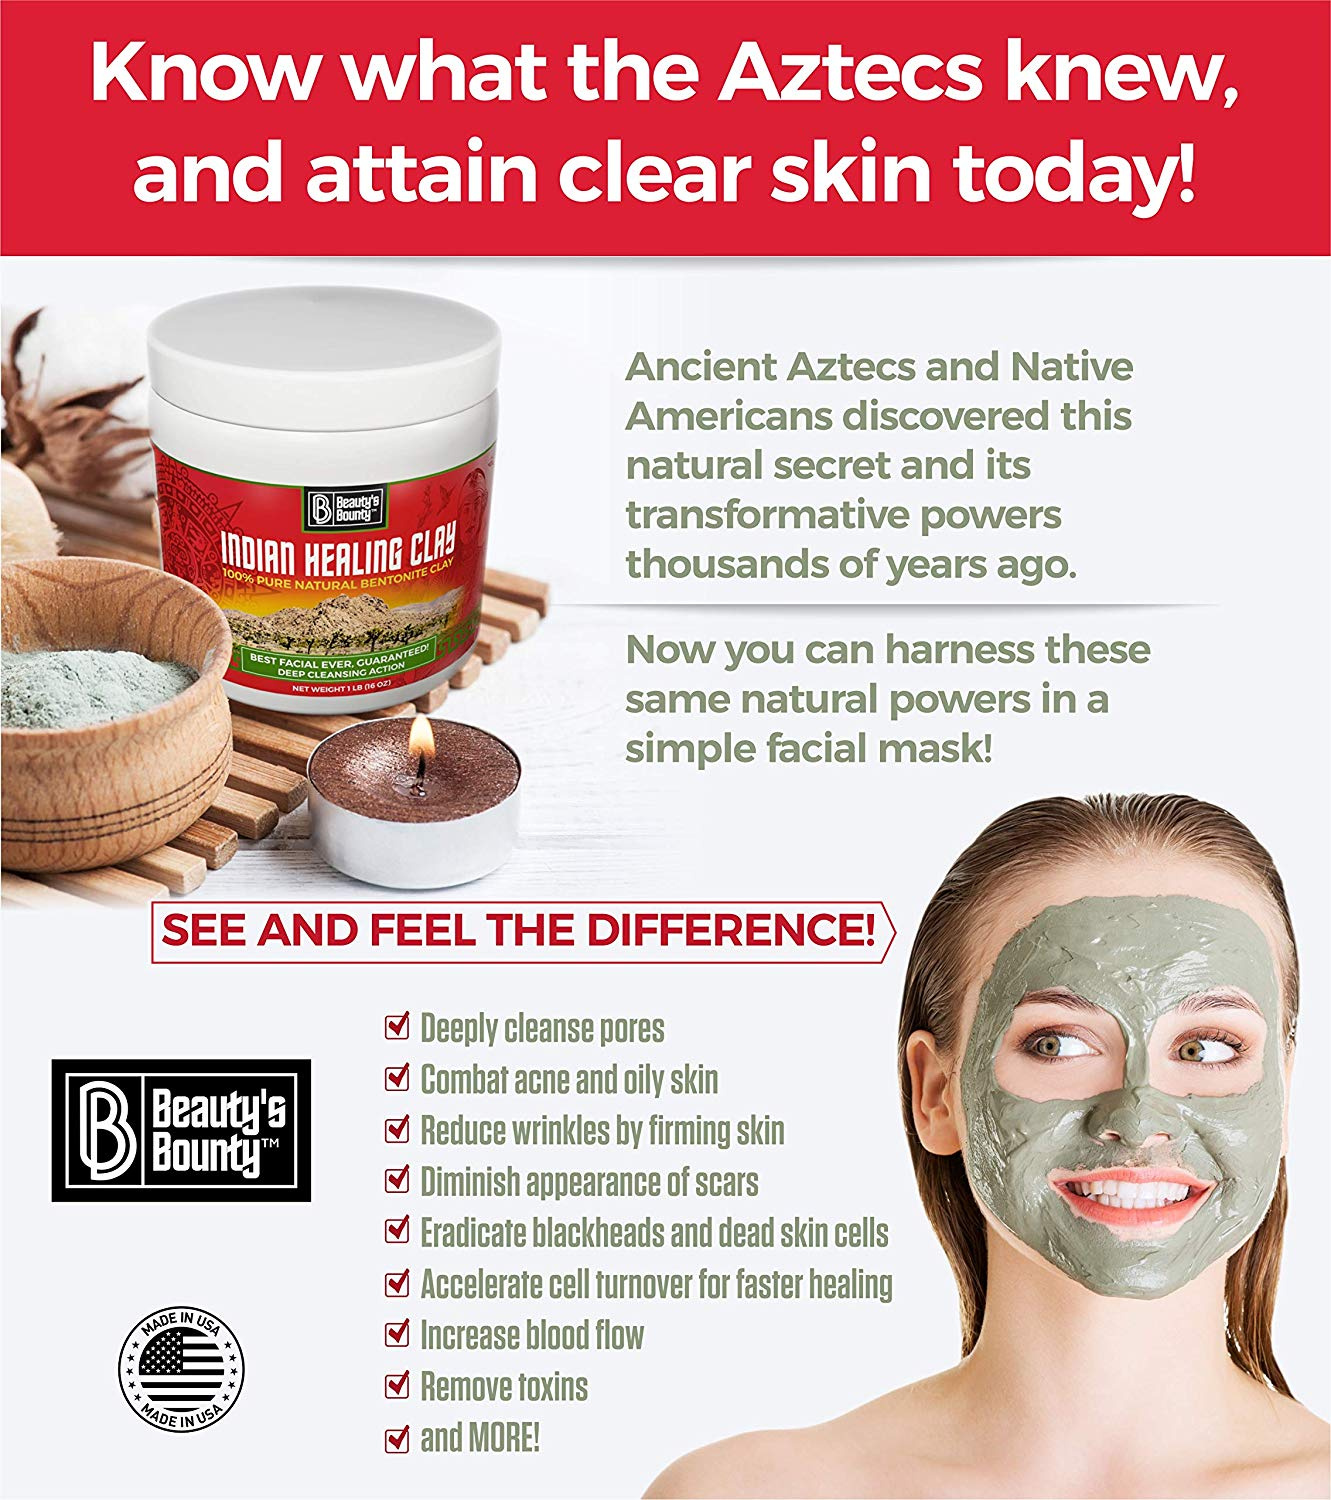 Beauty S Bounty Indian Healing Clay All Natural 100 Bentonite Clay Mask Detoxifying Clarifying Face Mask Reduces Acne Blackheads Wrinkles Pore Minimizer Exfoliating Face Mask Made In Usa